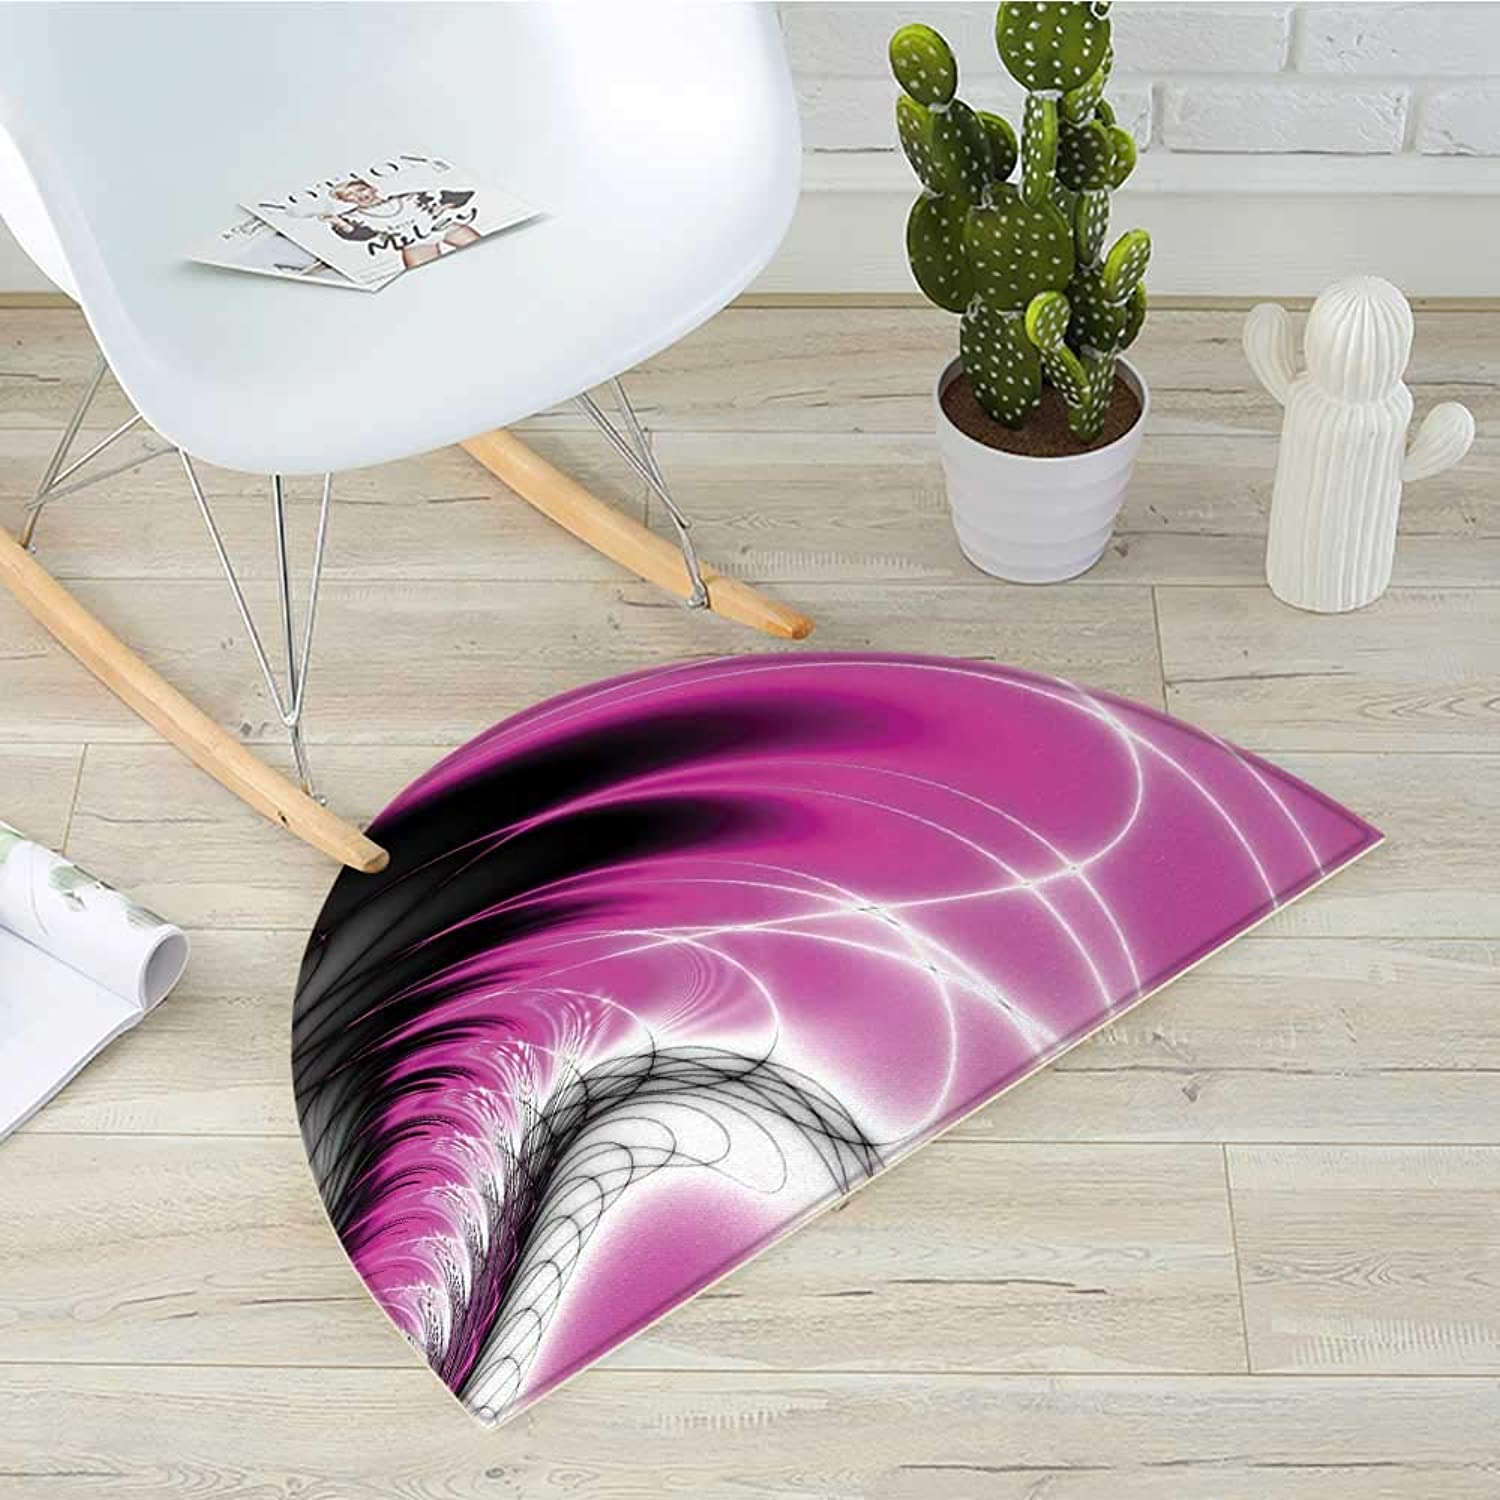 Fractal Half Round Door mats Digital Dynamic Energy Flows Inspired Artisan Fantasy Shapes Computer Print Bathroom Mat H 43.3  xD 64.9  Magenta Black